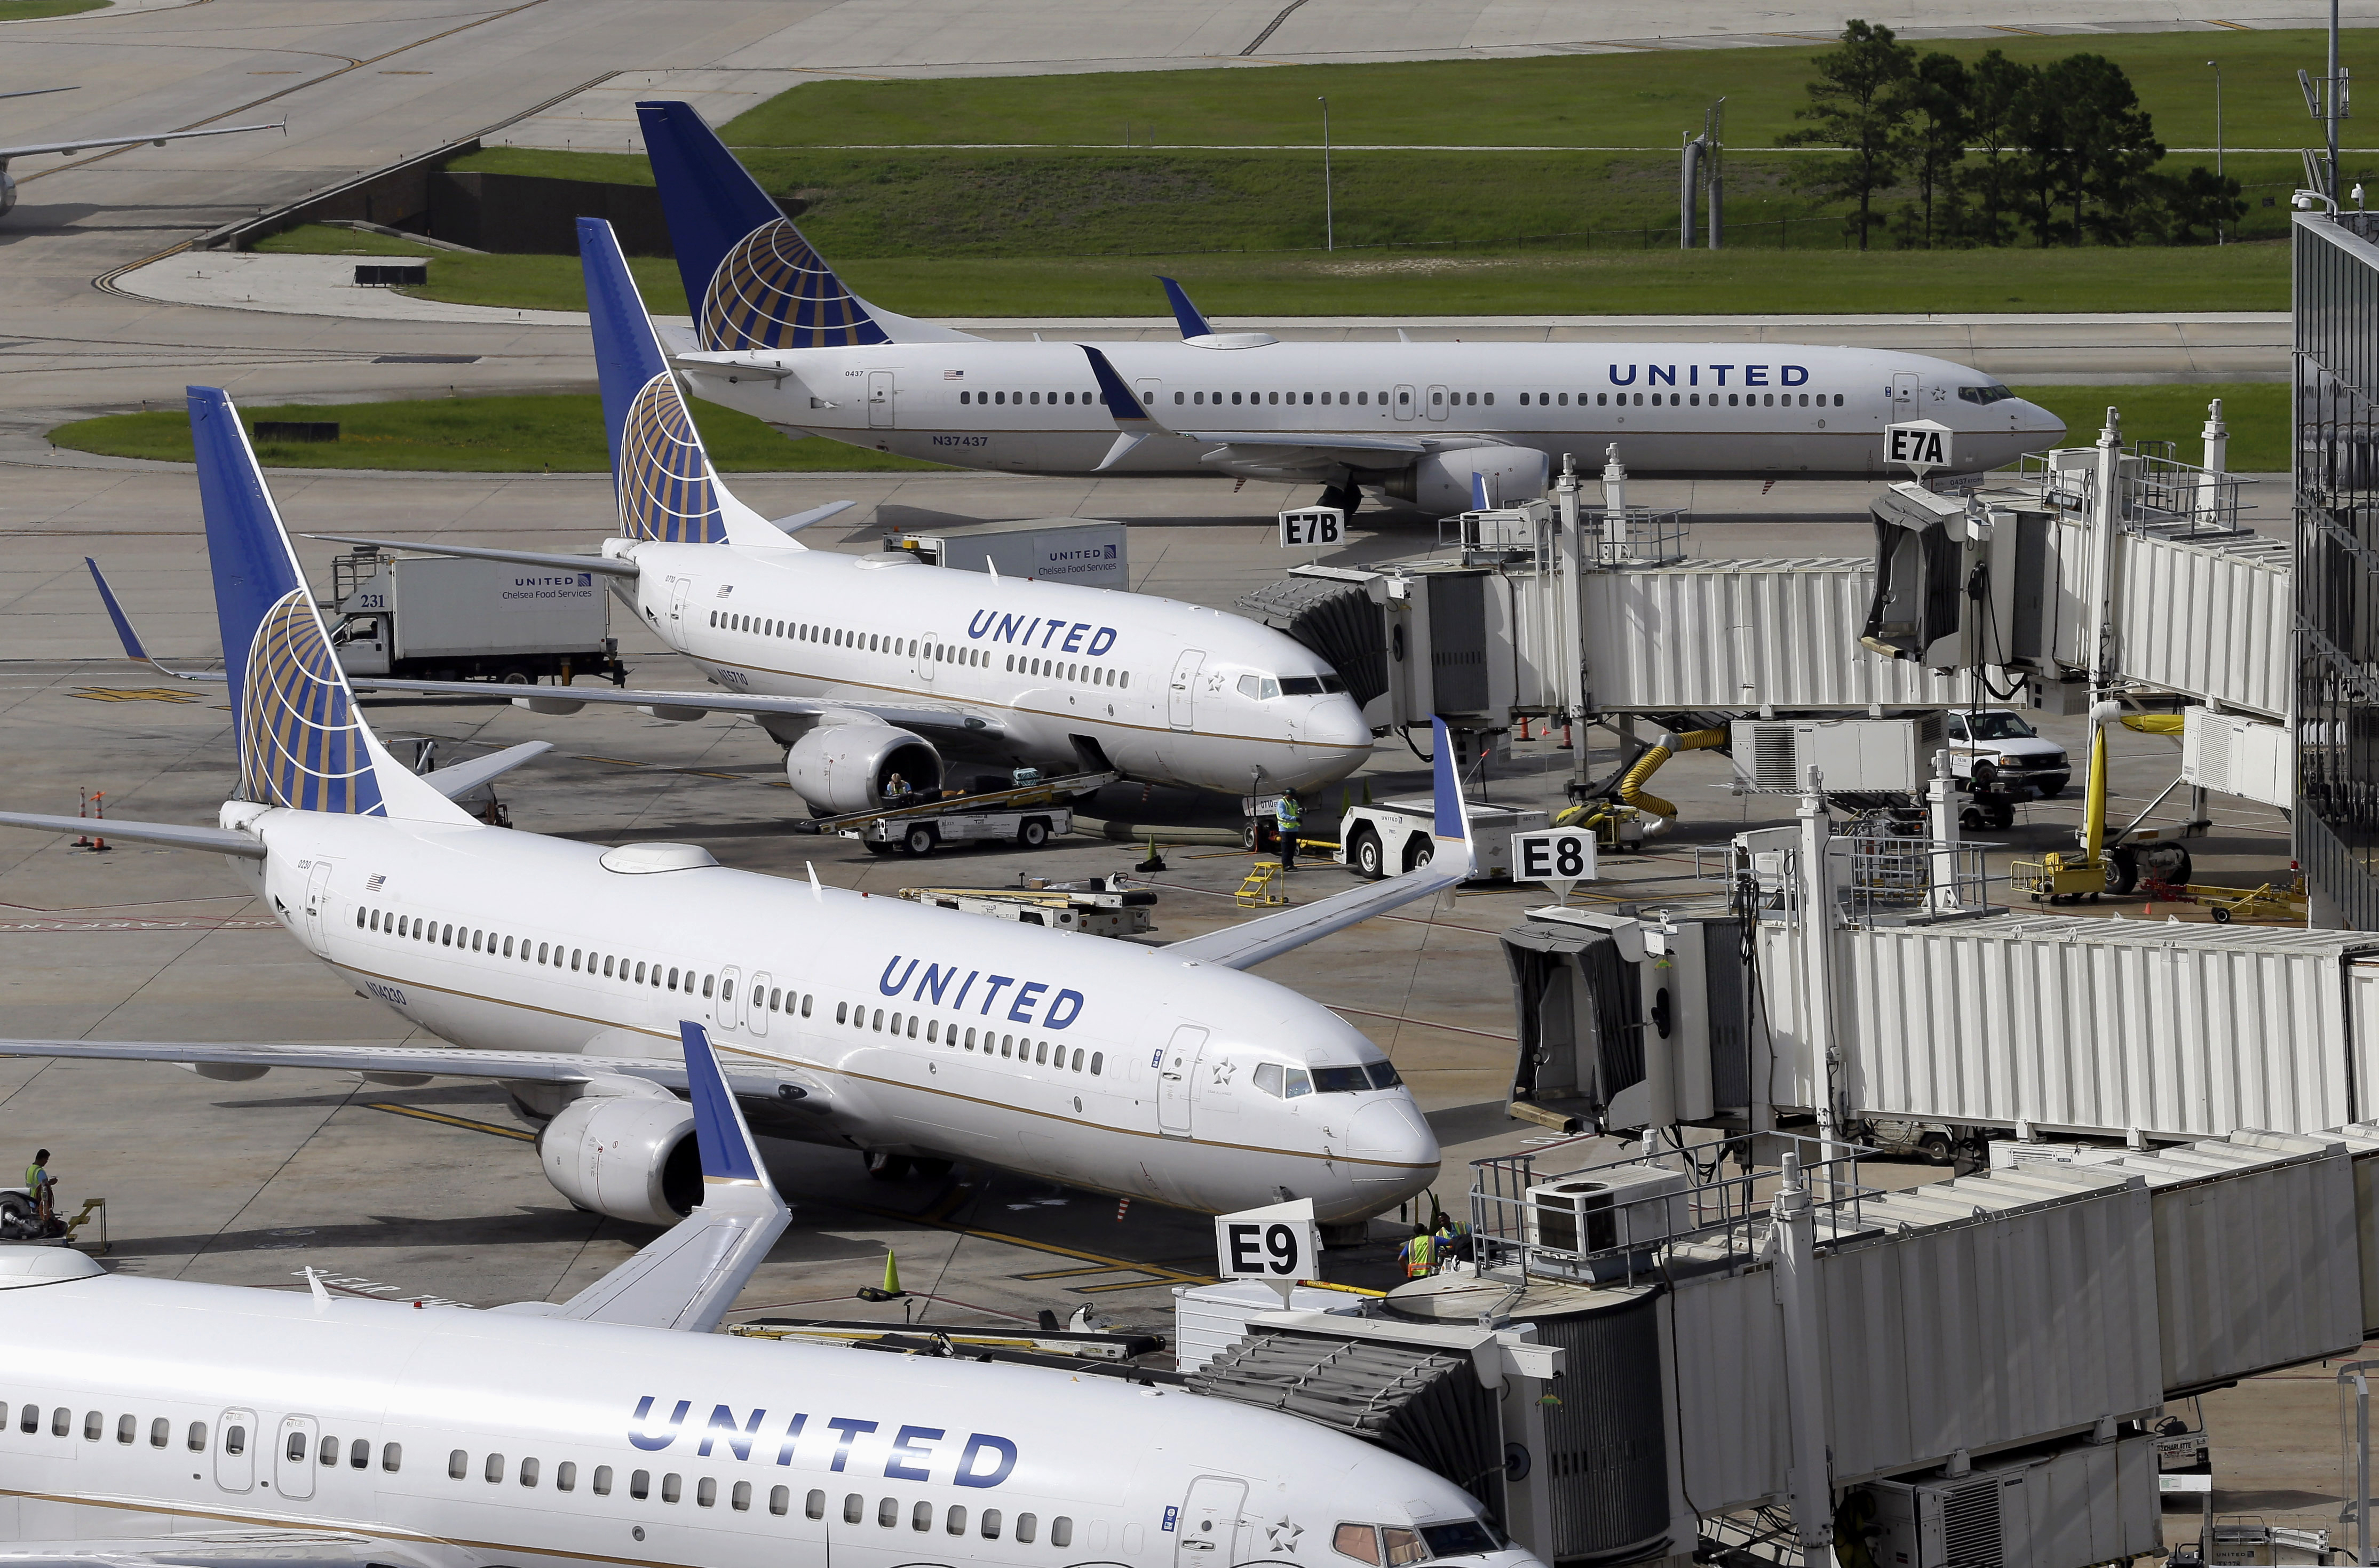 In this July 8, 2015, file photo, United Airlines planes are parked at their at George Bush Intercontinental Airport in Houston.